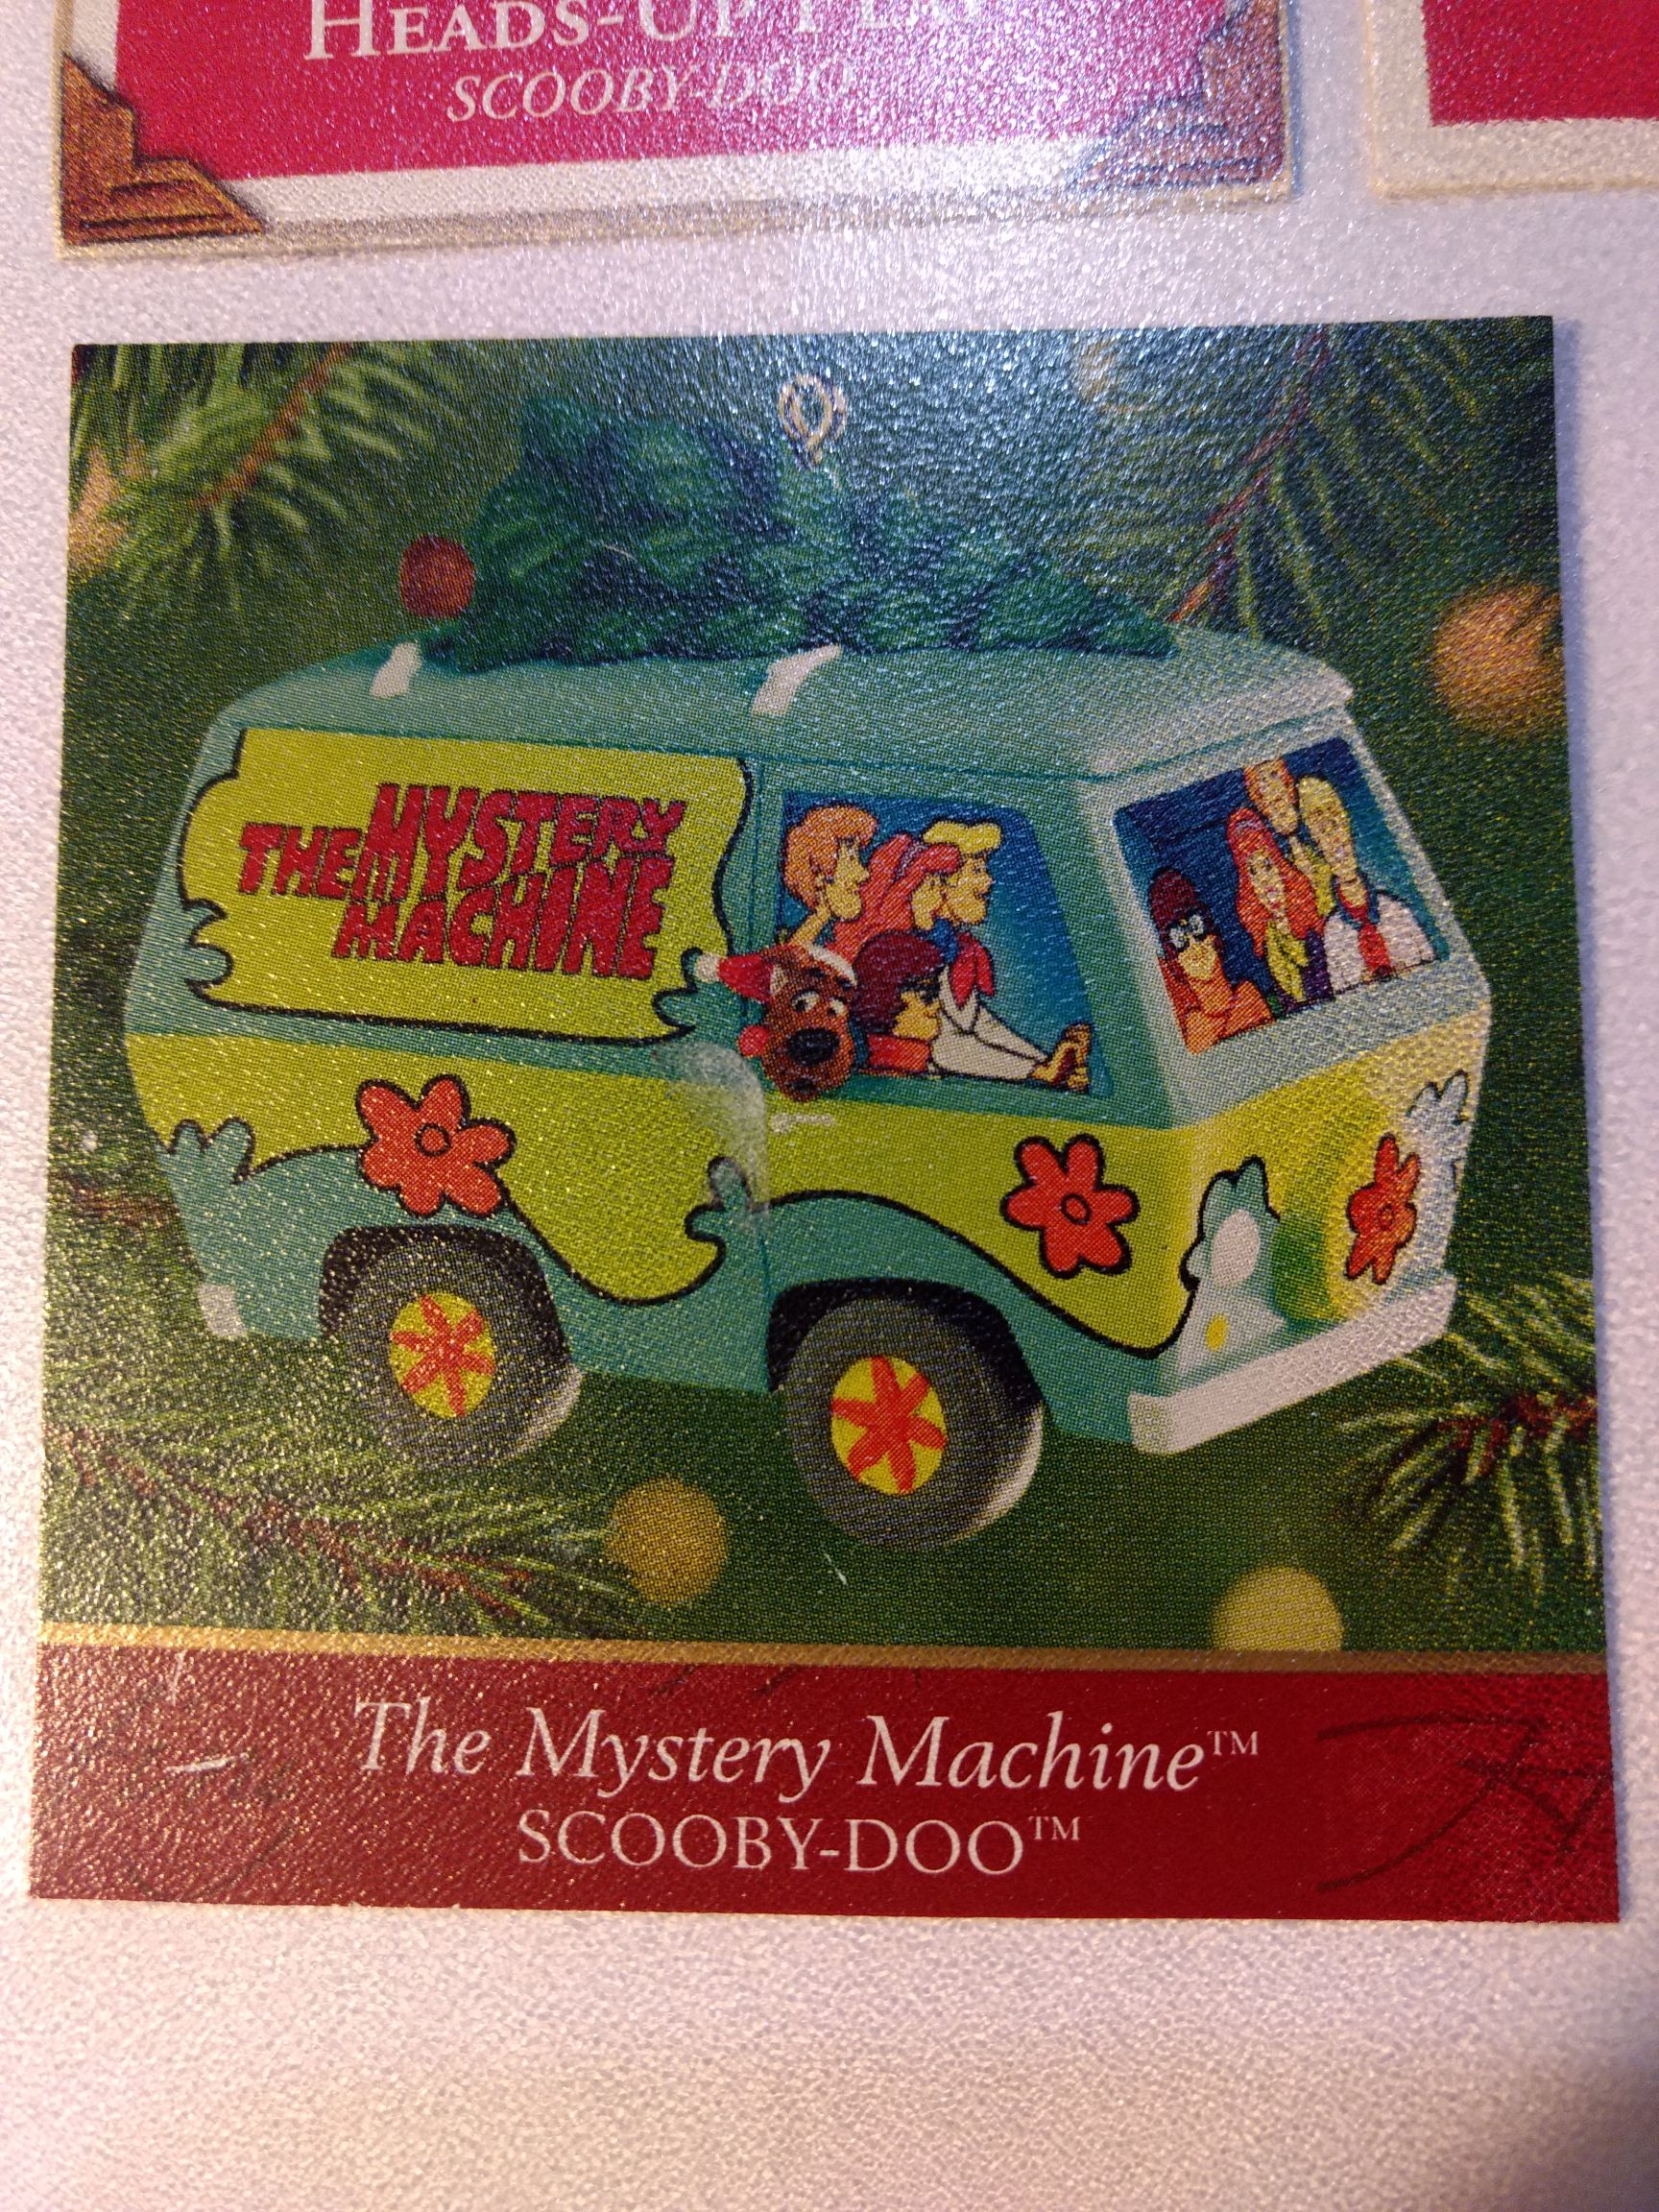 Scooby Doo - The Mystery Machine - Tree On Top Ornament - Hallmark front image (front cover)